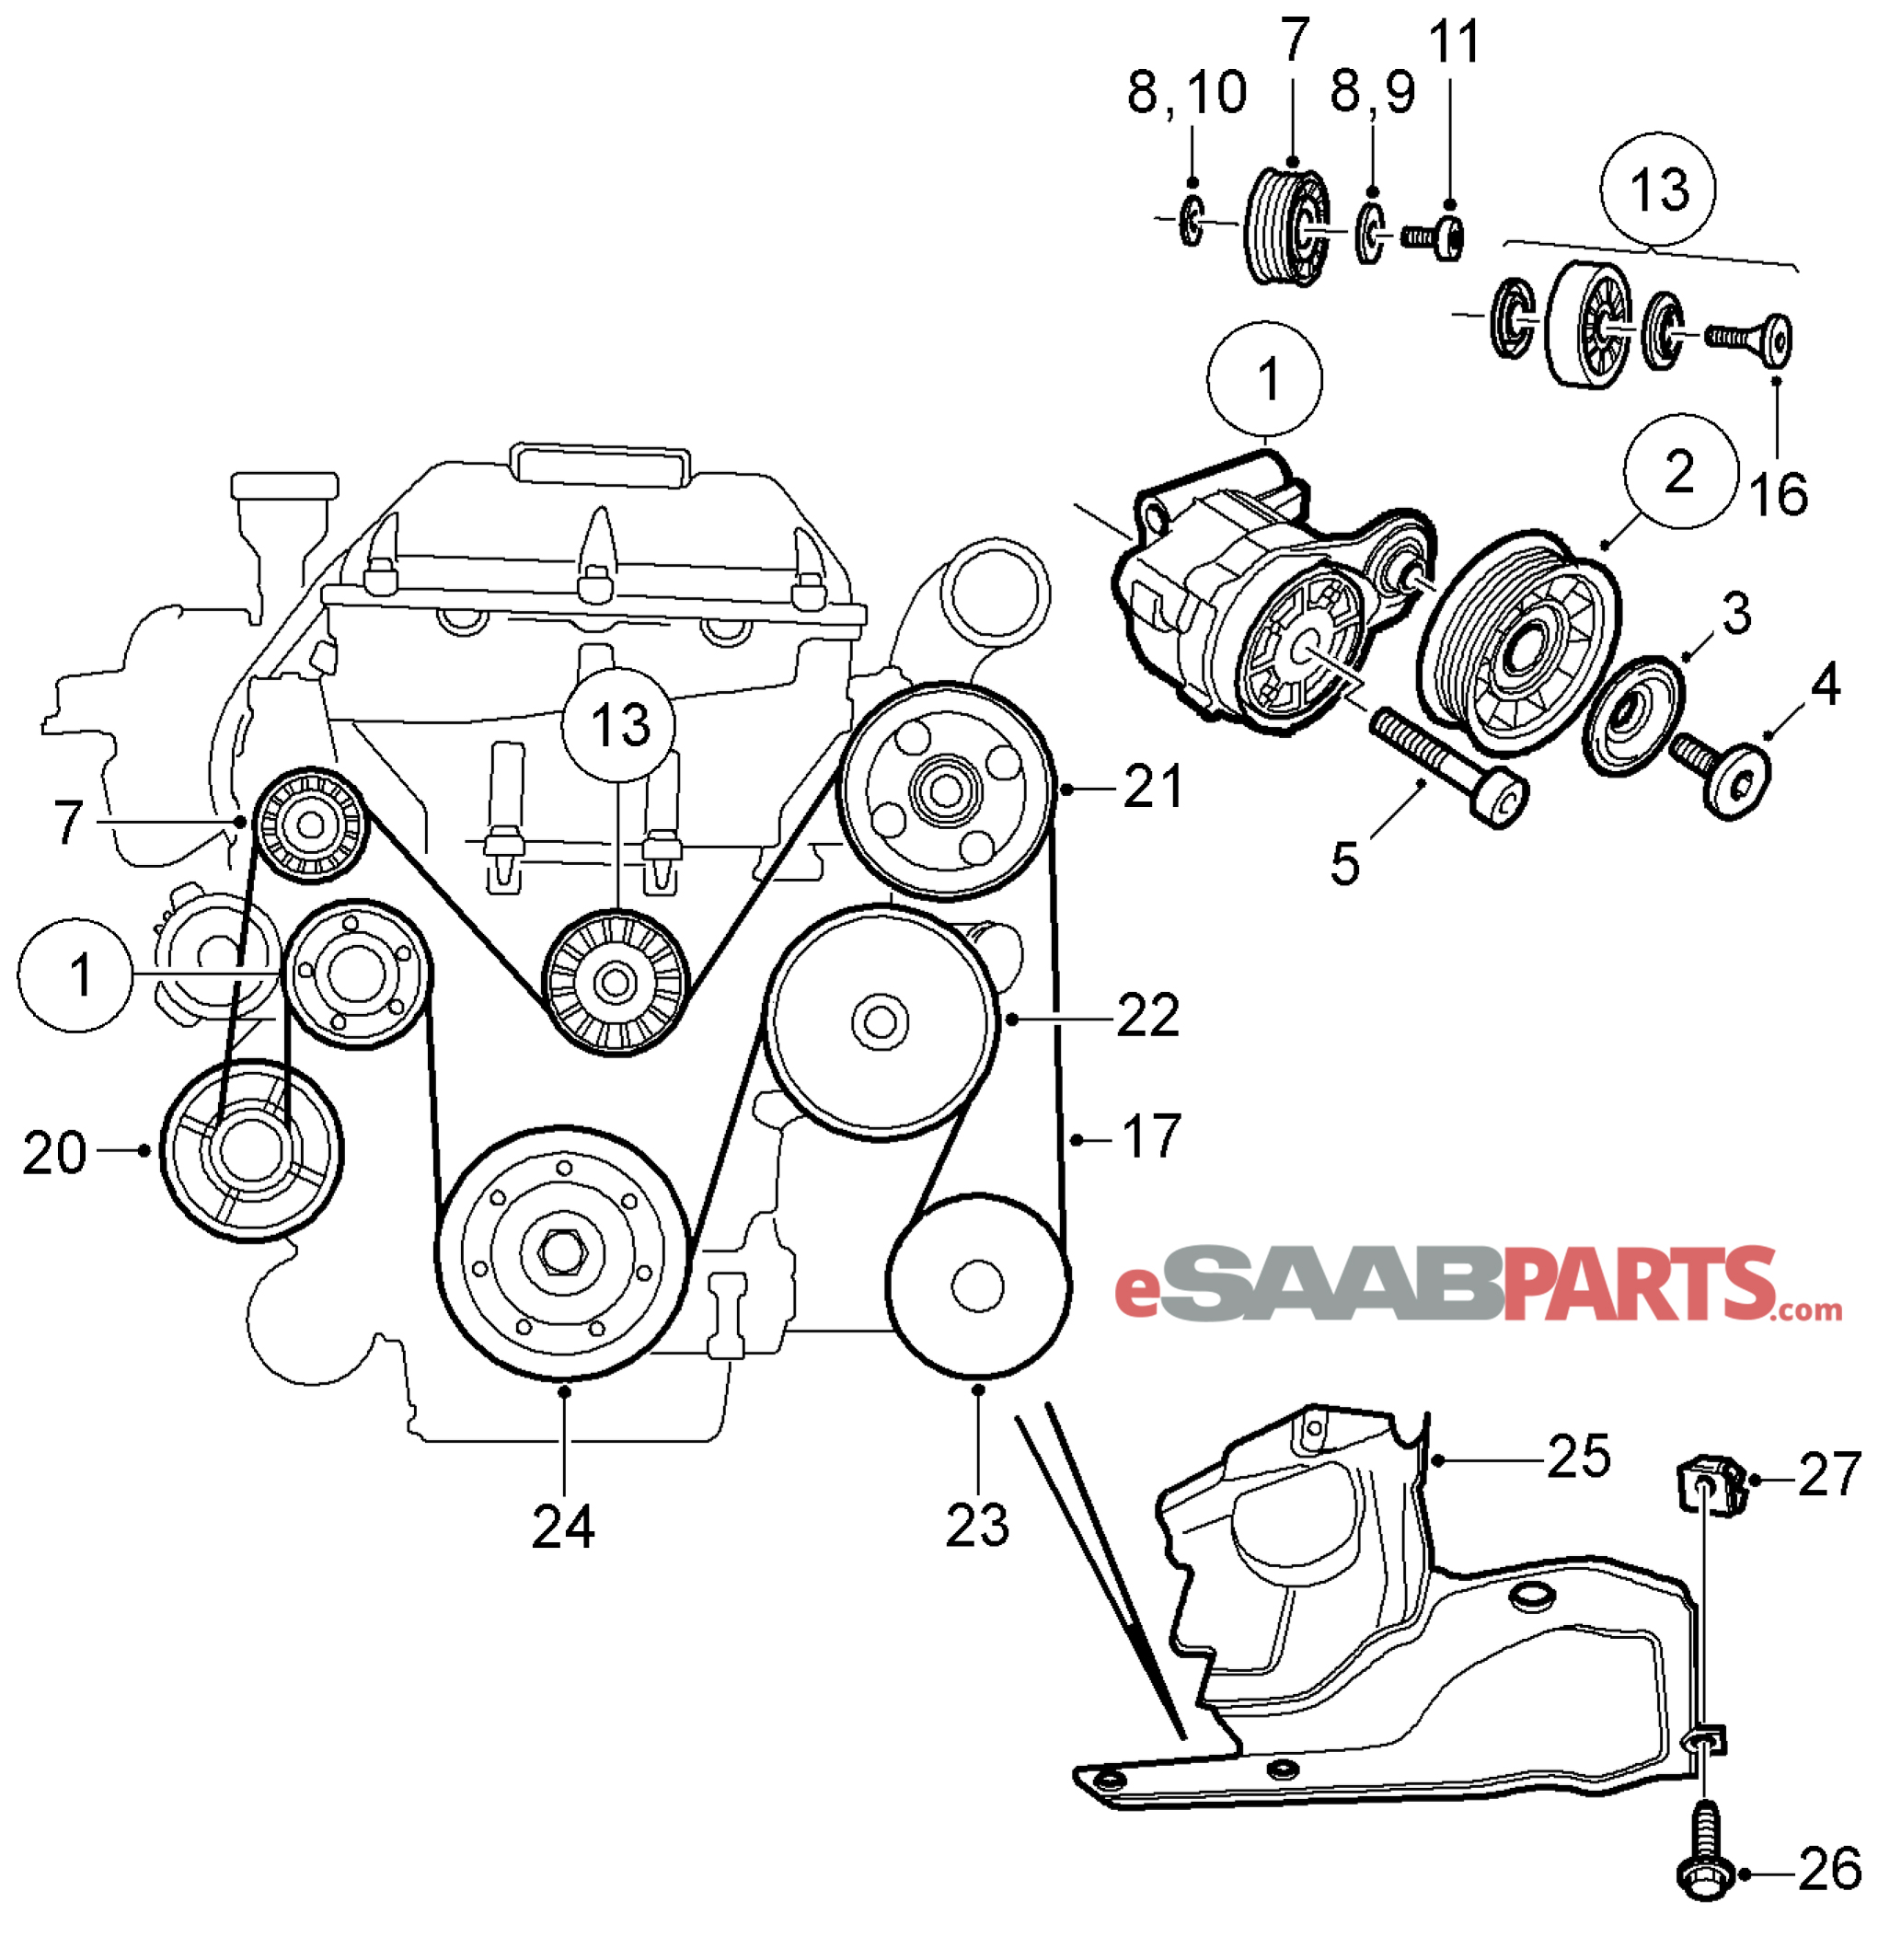 [DIAGRAM] 1999 Saab 9 3 Engine Diagram FULL Version HD